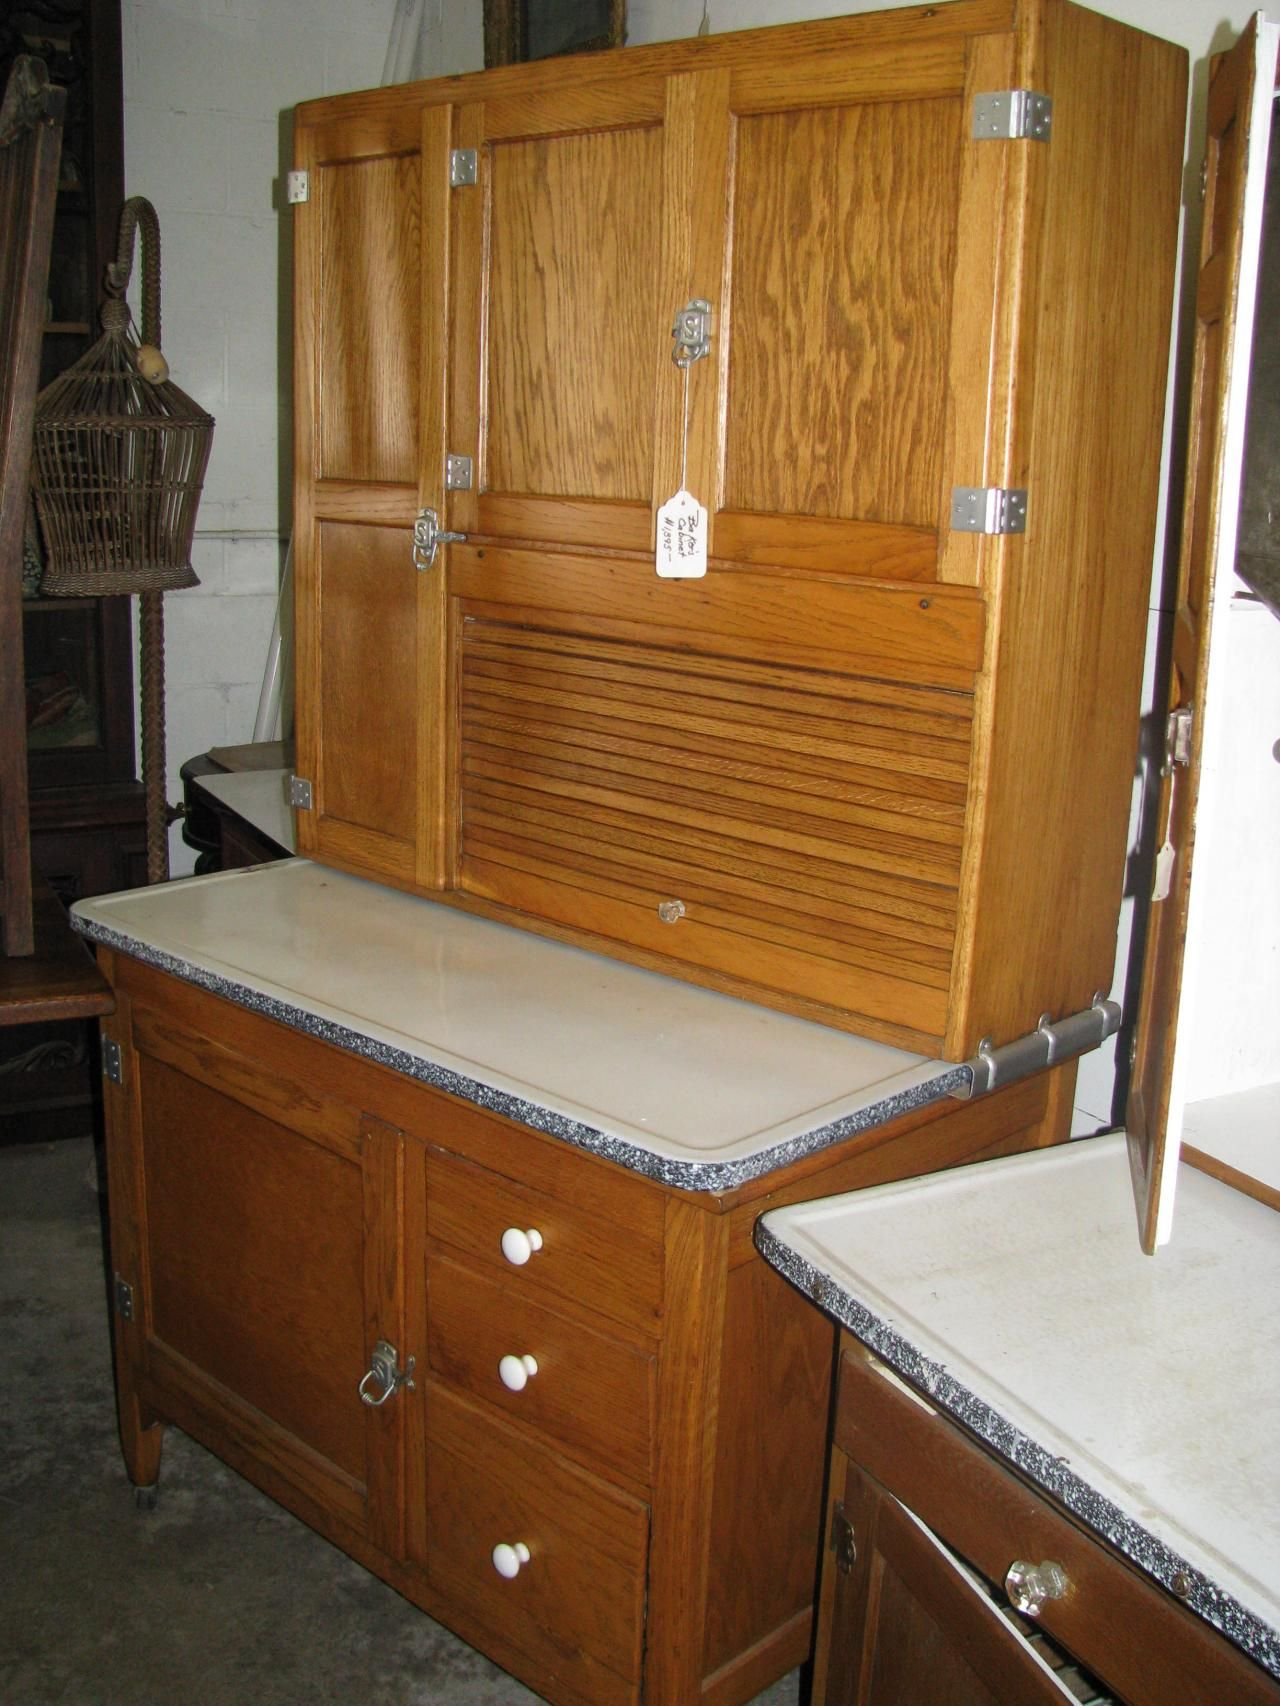 Hoosier Style Kitchen Cabinet Antique Hoosier Bakers Cabinet Including Yet Not Limited